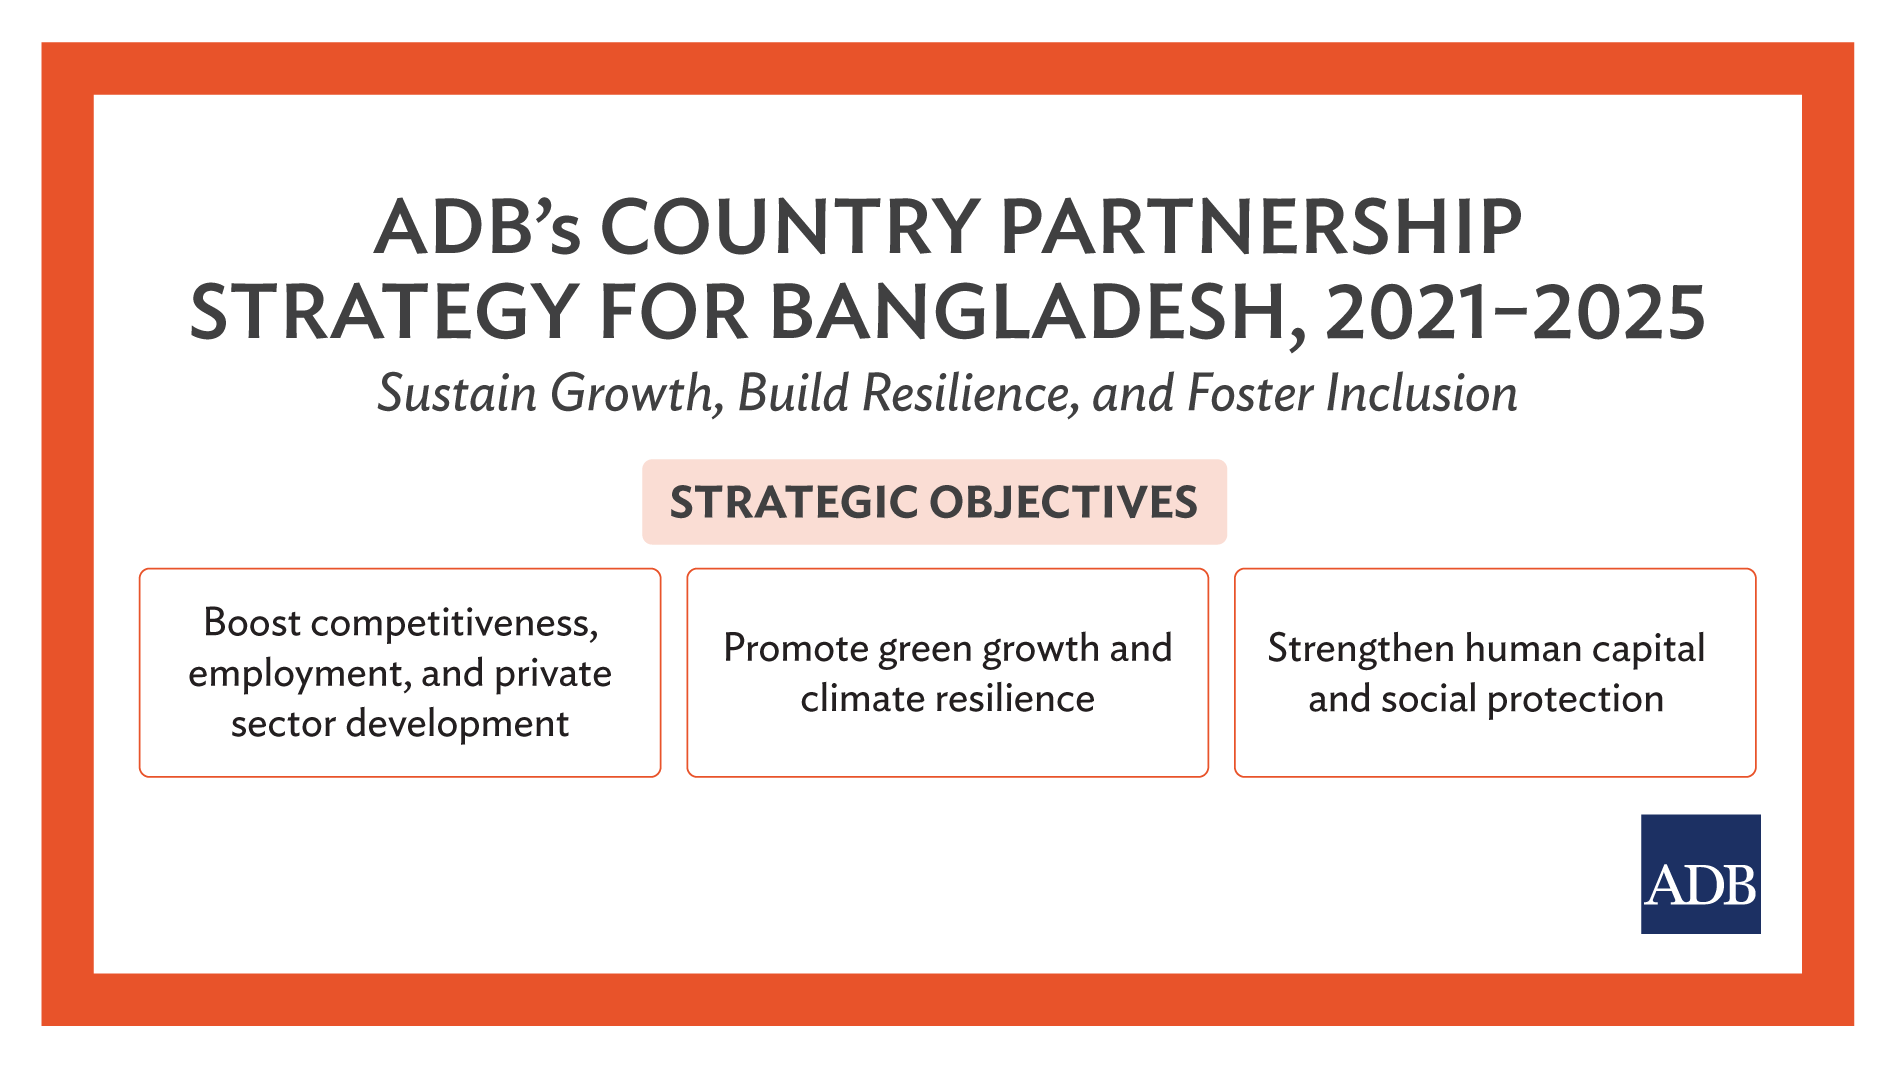 New ADB Partnership with Bangladesh to Boost Competitiveness, Green Growth, and Social Inclusion